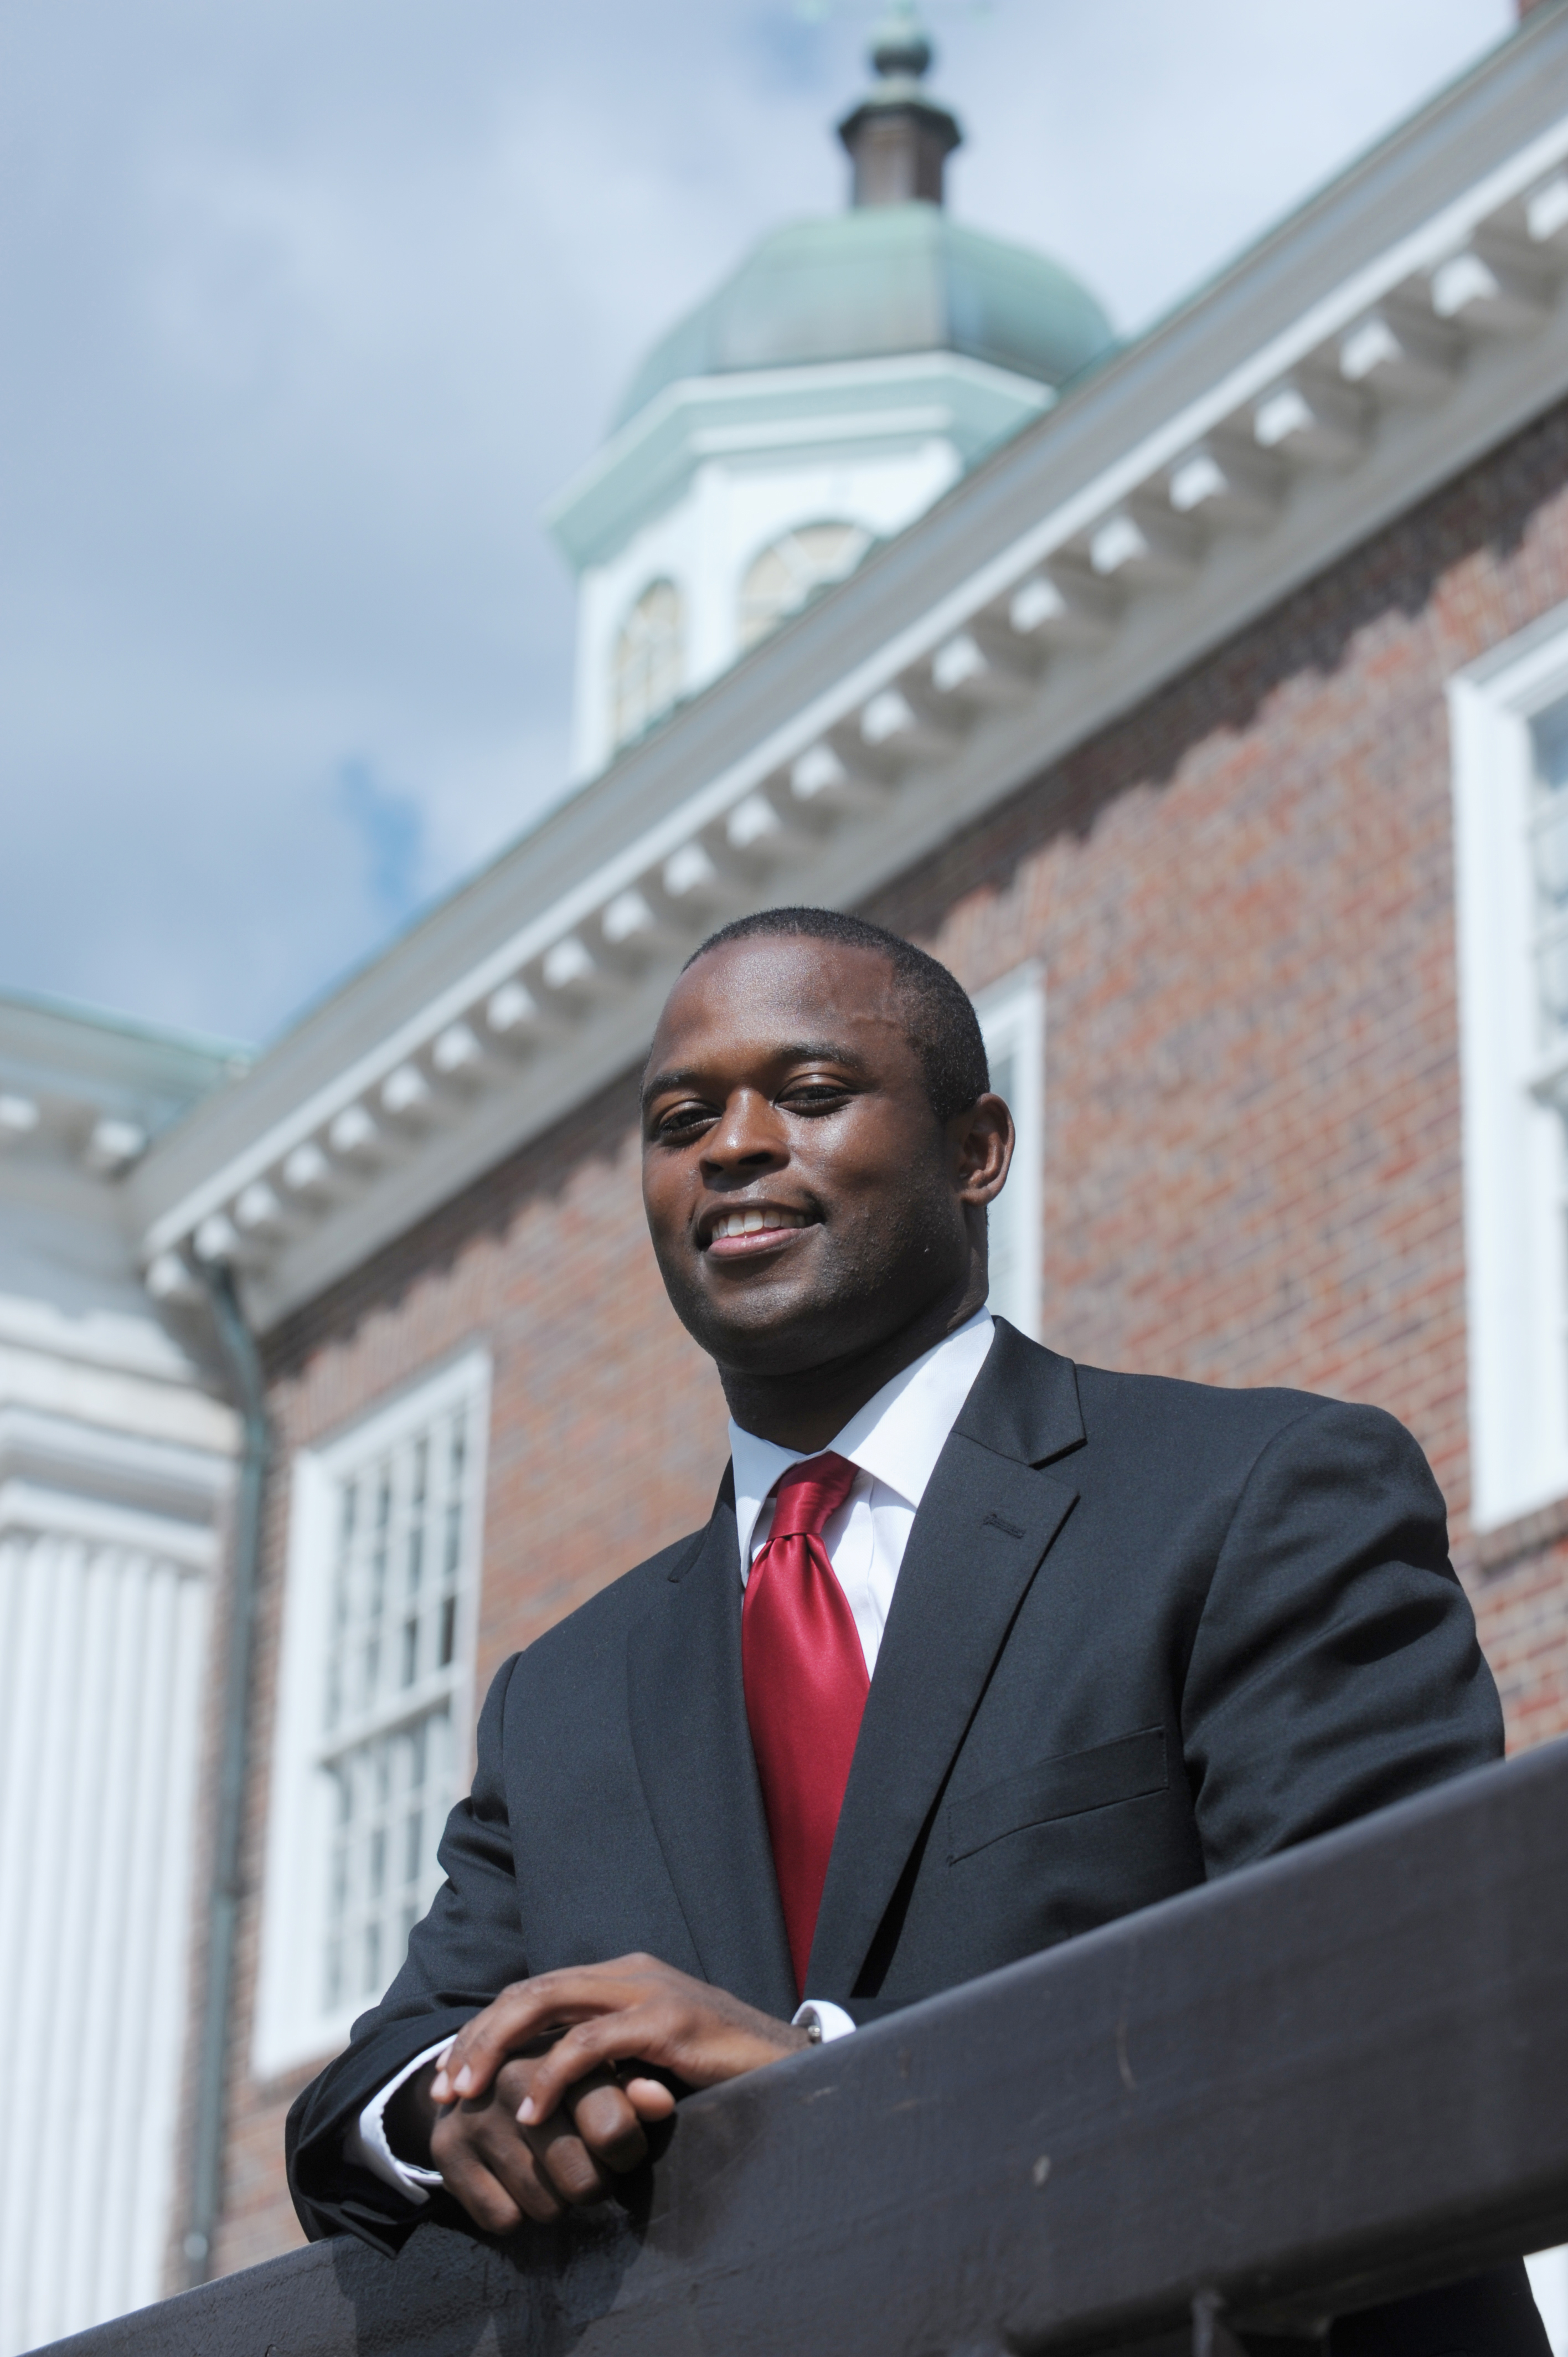 UofL graduate named McConnell's legal counsel